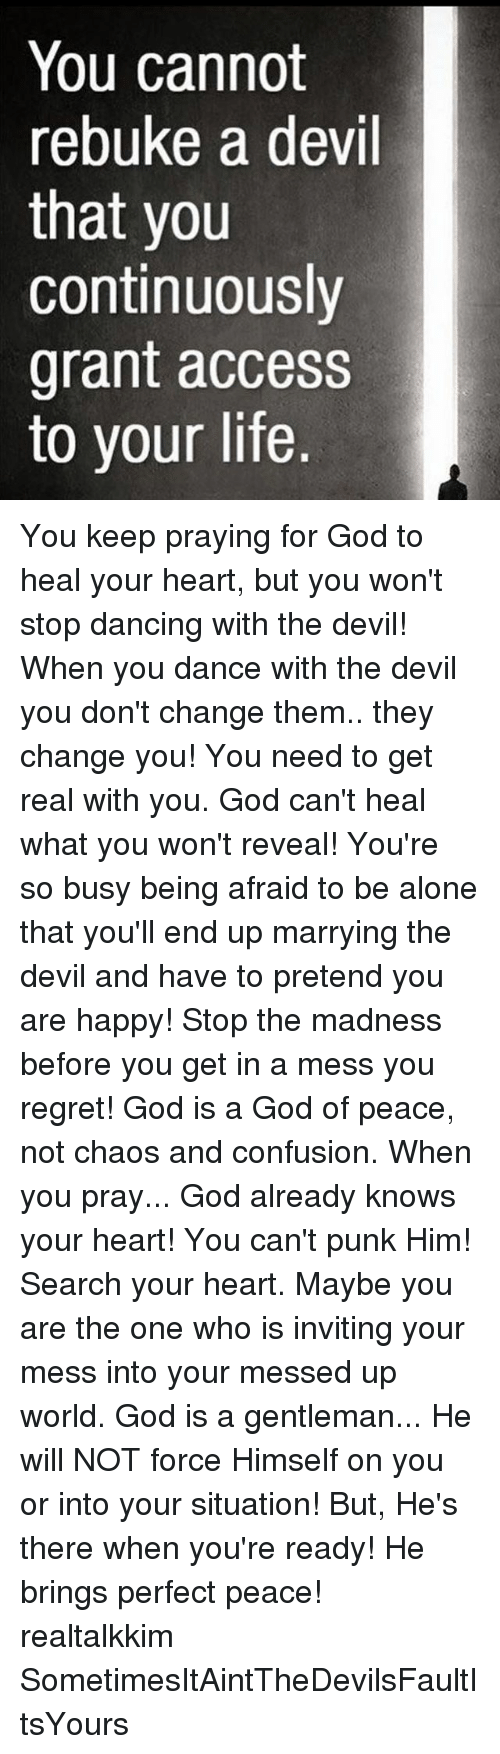 Regretment: You cannot  rebuke a devil  that you  continuously  grant access  to your life. You keep praying for God to heal your heart, but you won't stop dancing with the devil! When you dance with the devil you don't change them.. they change you! You need to get real with you. God can't heal what you won't reveal! You're so busy being afraid to be alone that you'll end up marrying the devil and have to pretend you are happy! Stop the madness before you get in a mess you regret! God is a God of peace, not chaos and confusion. When you pray... God already knows your heart! You can't punk Him! Search your heart. Maybe you are the one who is inviting your mess into your messed up world. God is a gentleman... He will NOT force Himself on you or into your situation! But, He's there when you're ready! He brings perfect peace! realtalkkim SometimesItAintTheDevilsFaultItsYours